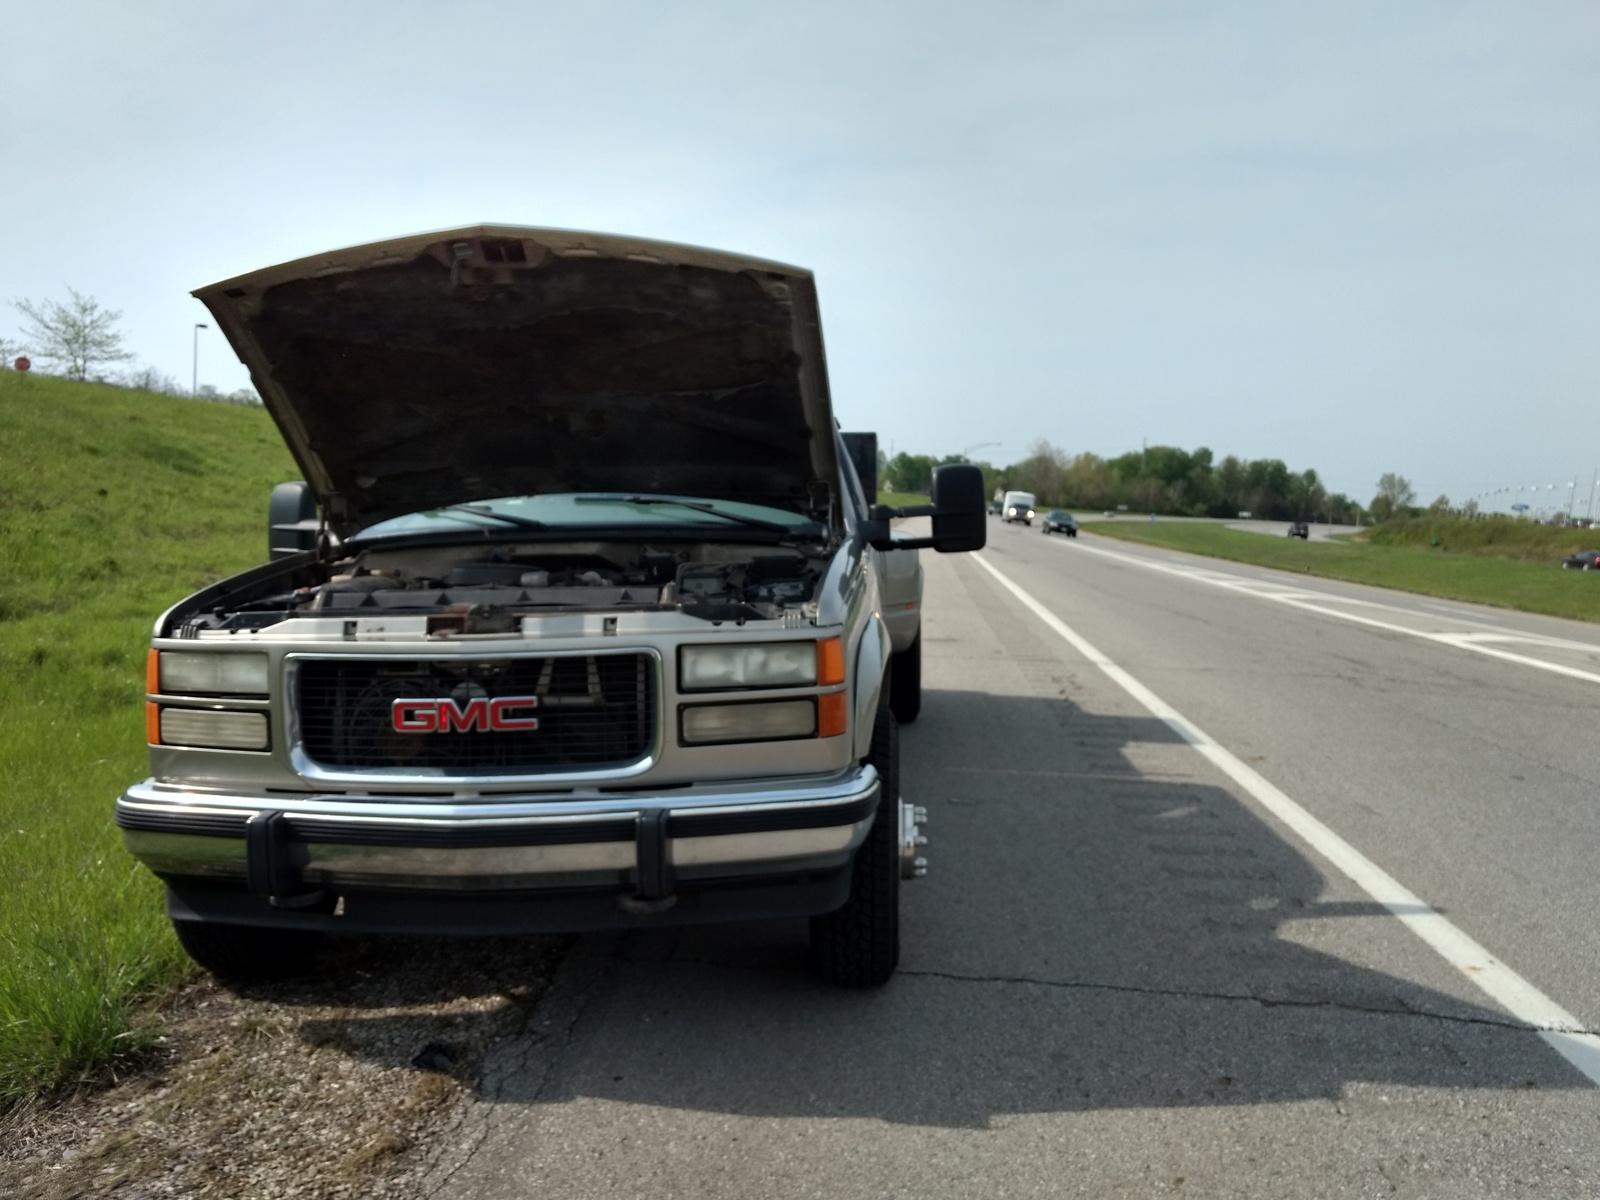 GMC Sierra 1500 Questions - Truck suddenly stops running ... on